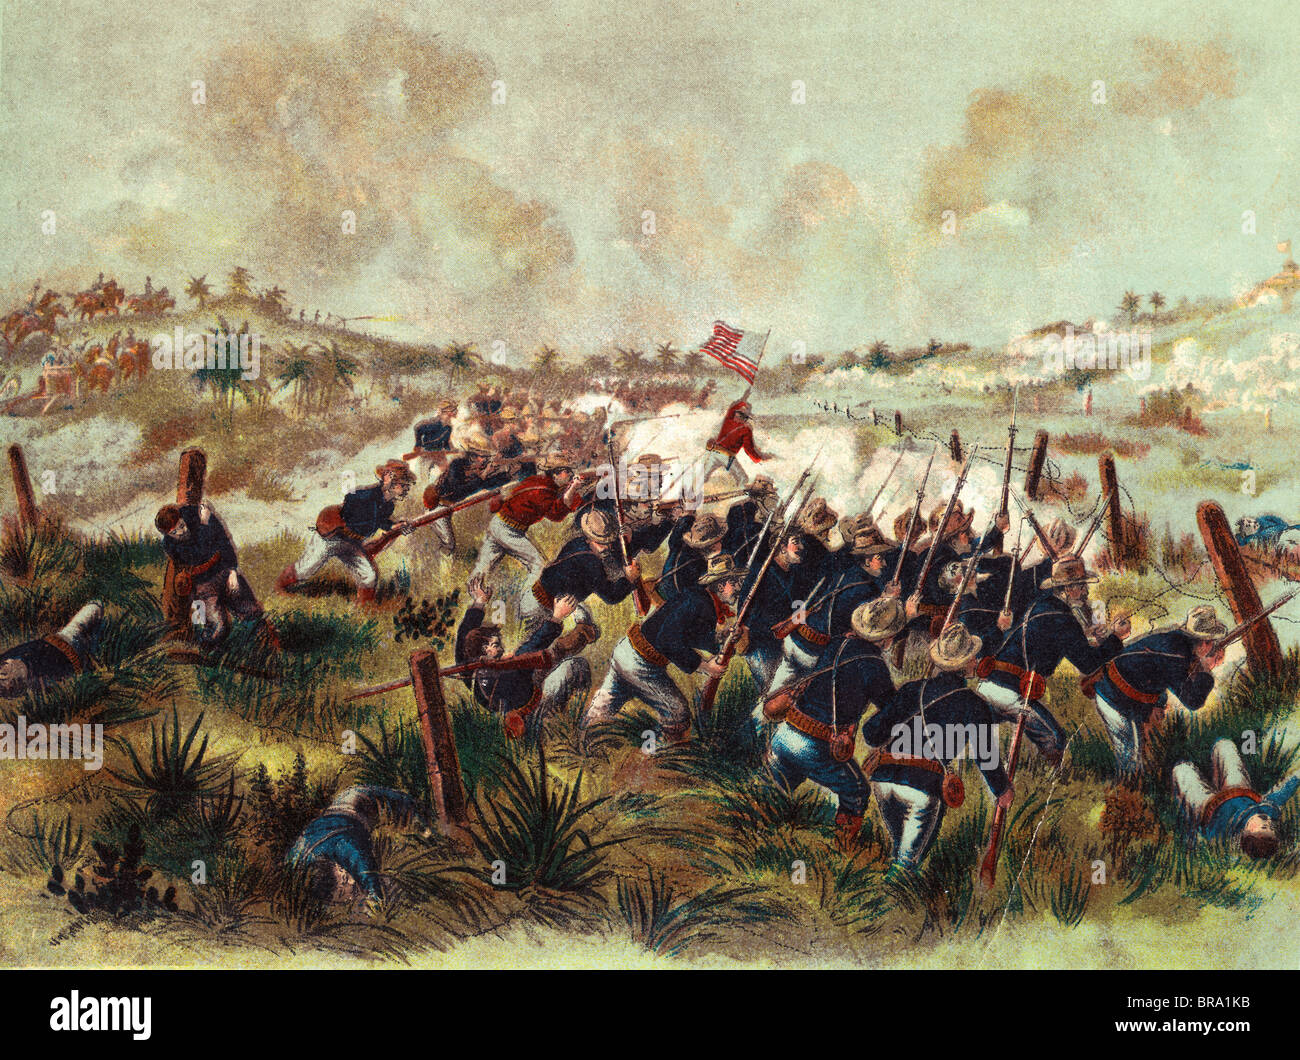 1890s AMERICAN TROOPS CHARGE SAN JUAN HILL CUBA JULY 1 1898 DURING SPANISH AMERICAN WAR BATTLE SCENE - Stock Image